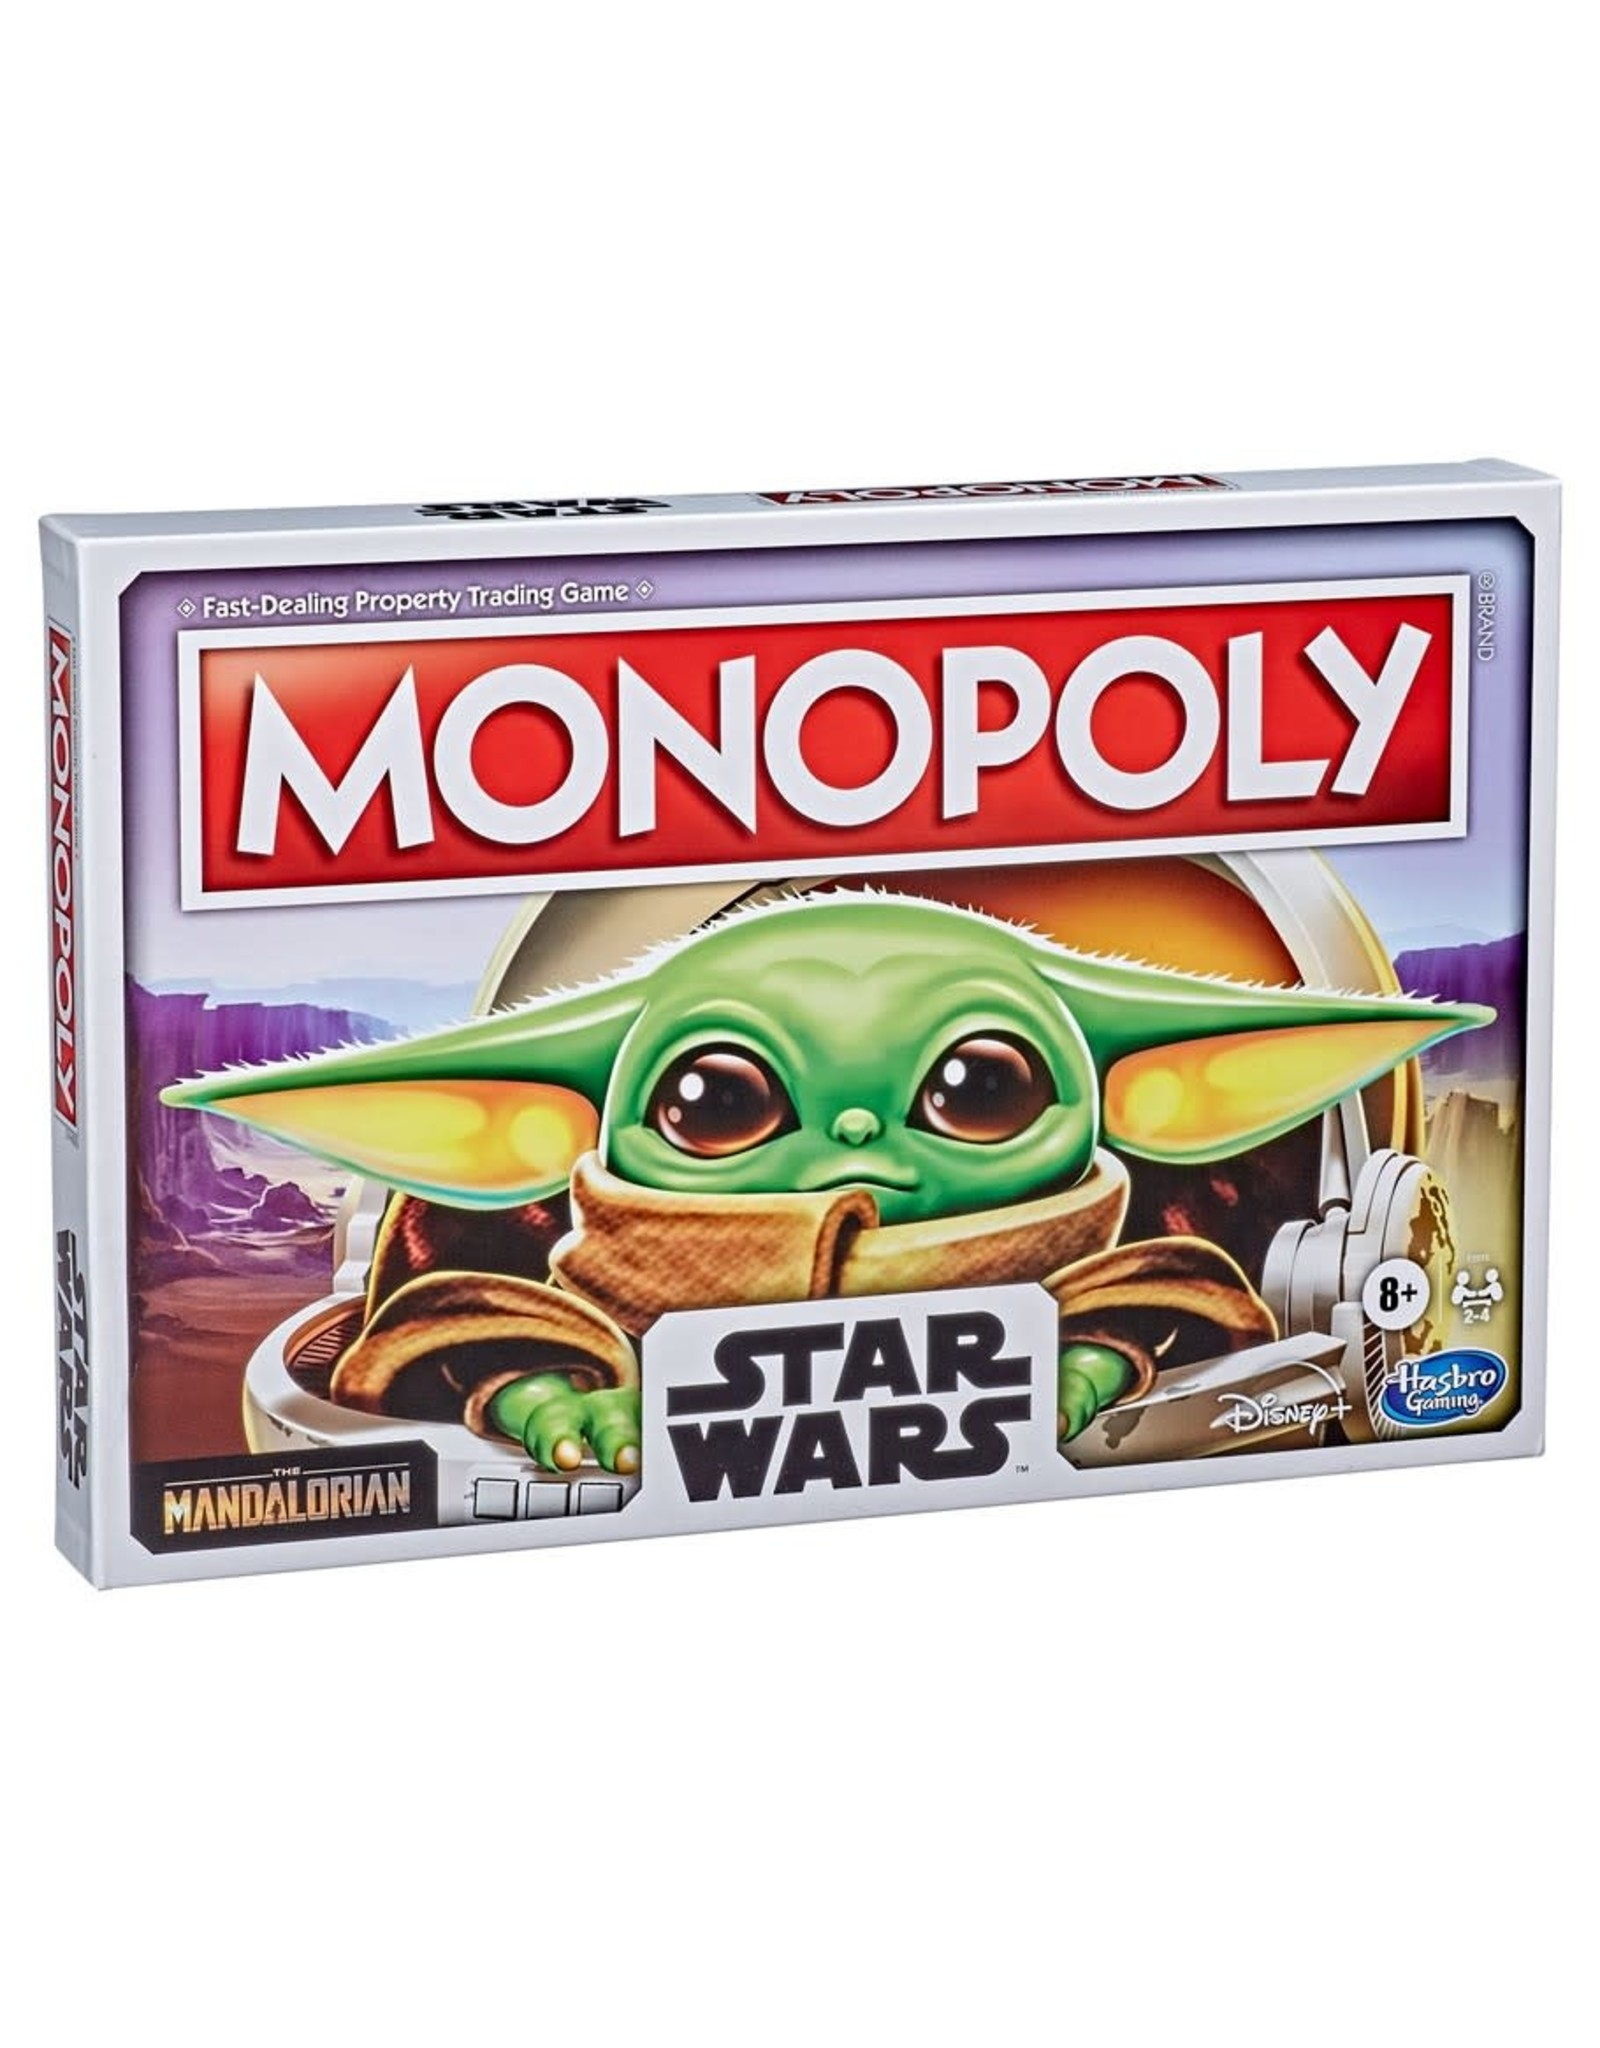 Monopoly: The Child